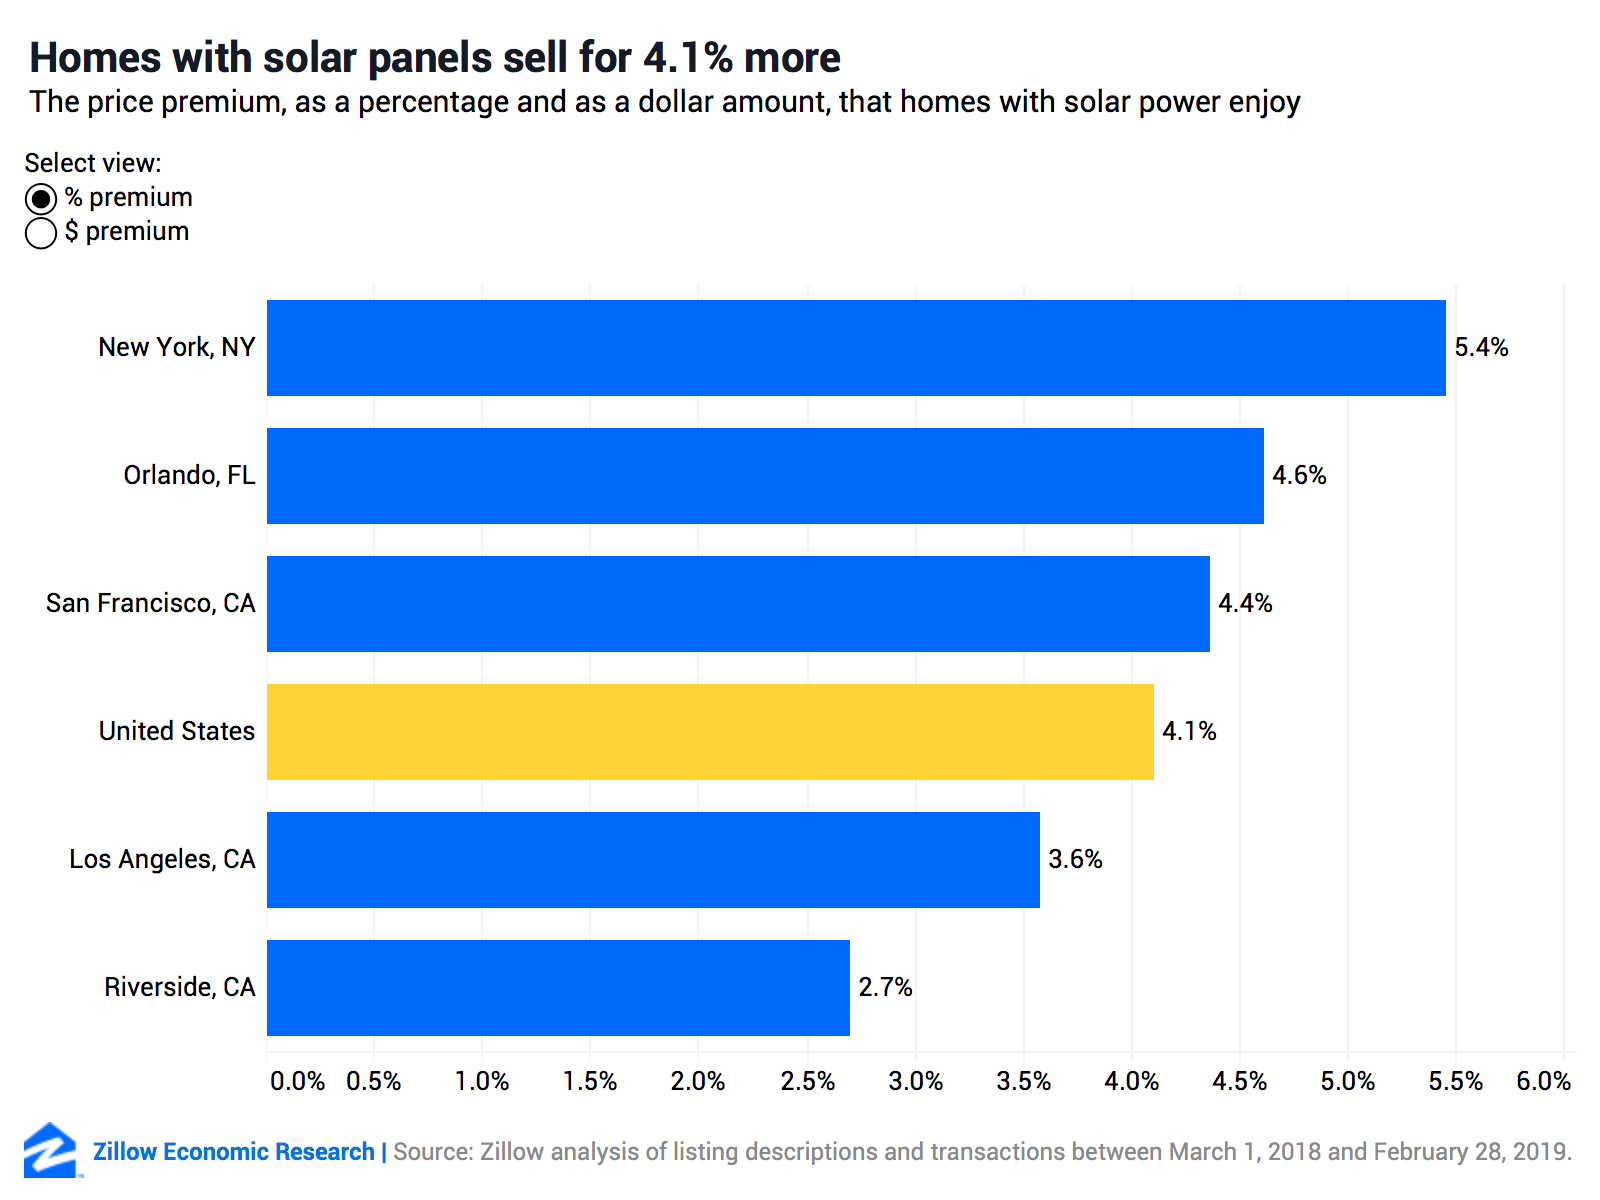 Homes With Solar Panels Sell for 4 1% More - Zillow Research